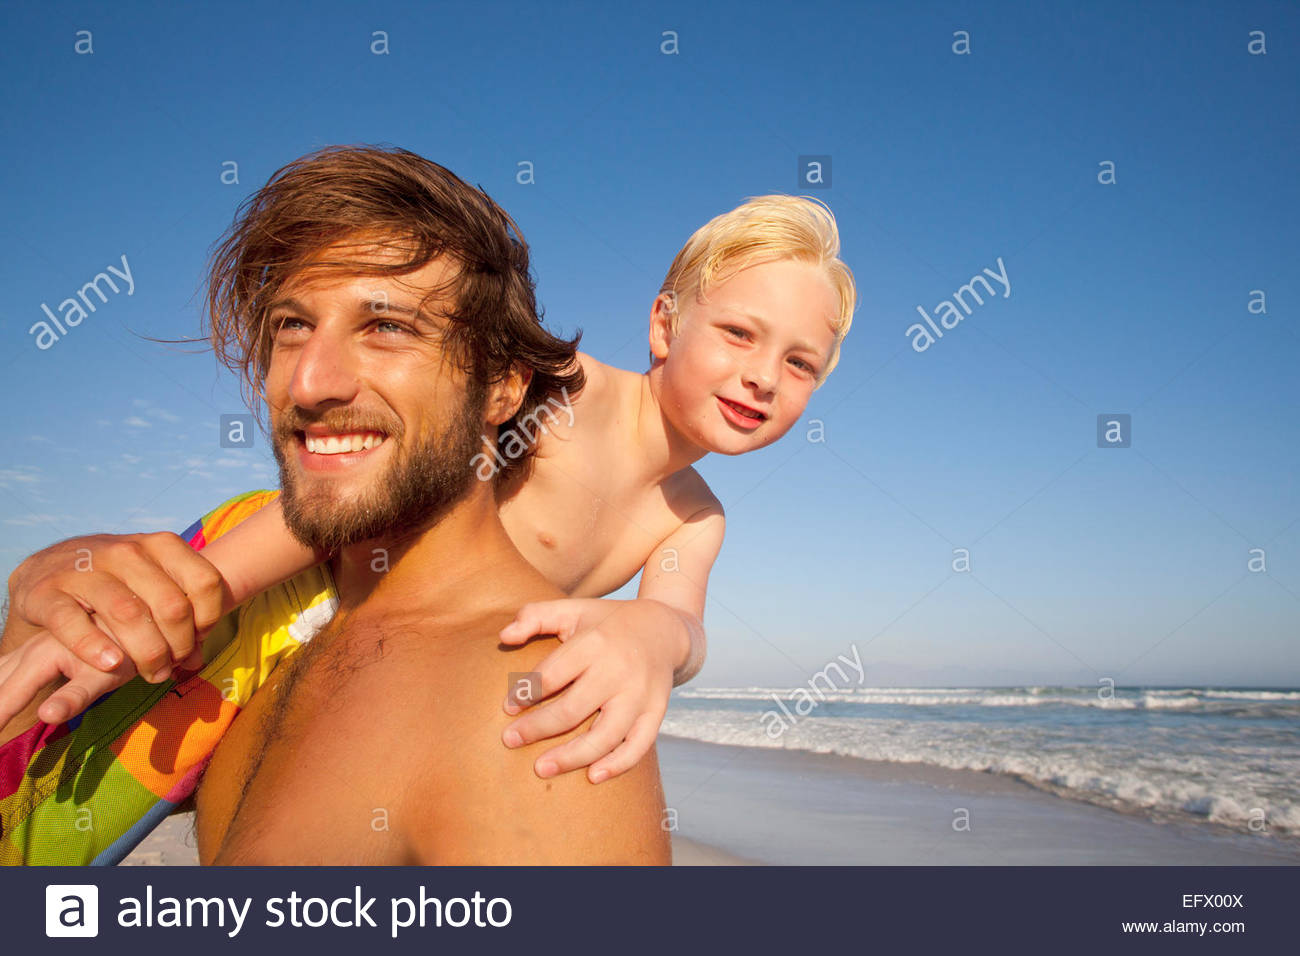 Père souriant, tenant sur l'épaule du fils, on sunny beach Photo Stock